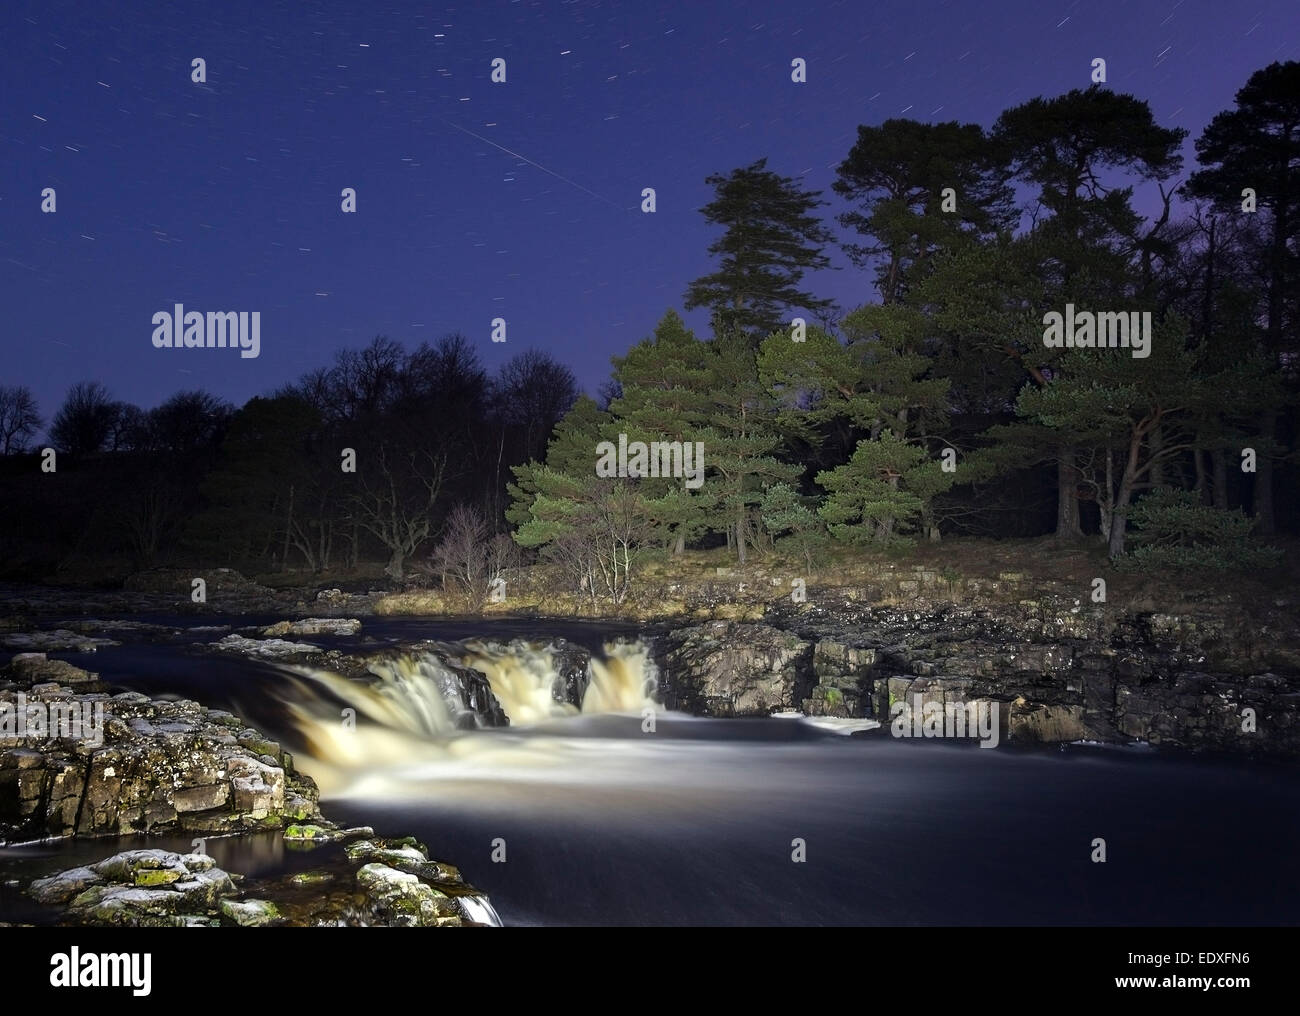 Night Sky with Meteorite at Low Force on the River Tees, Bowlees Teesdale County Durham UK - Stock Image